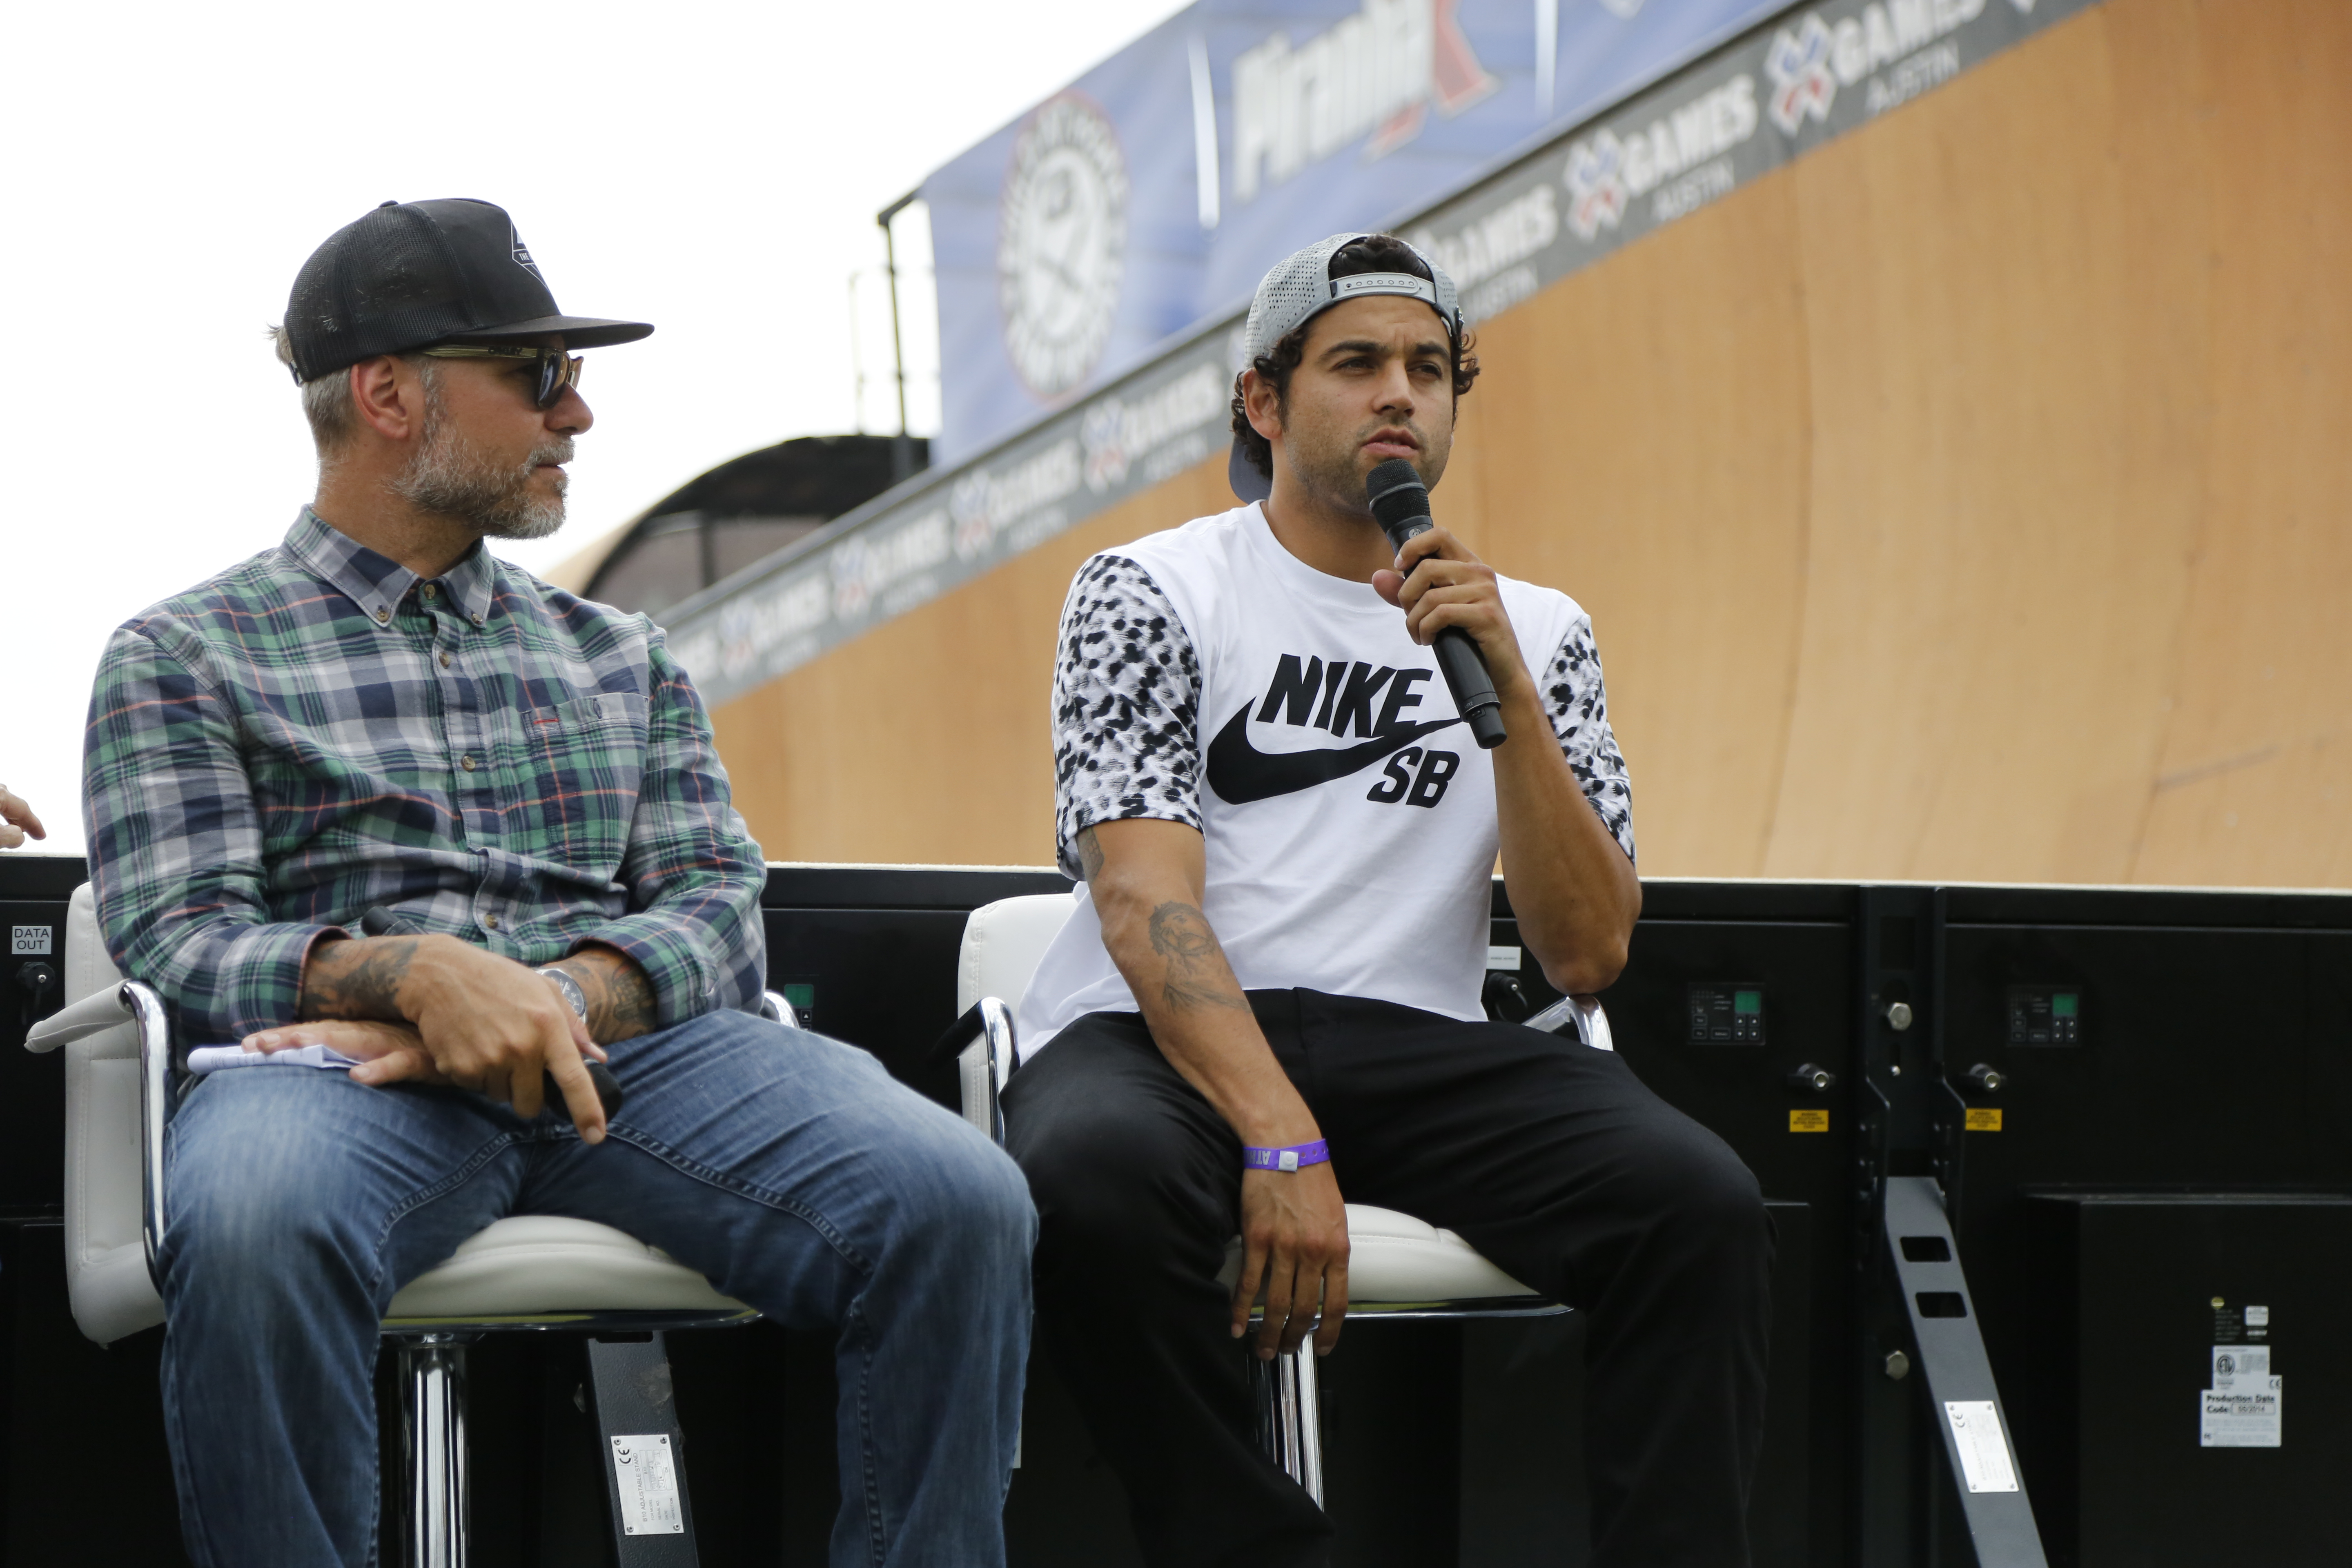 Ryan Clements and Paul Rodriguez at Innoskate X Games